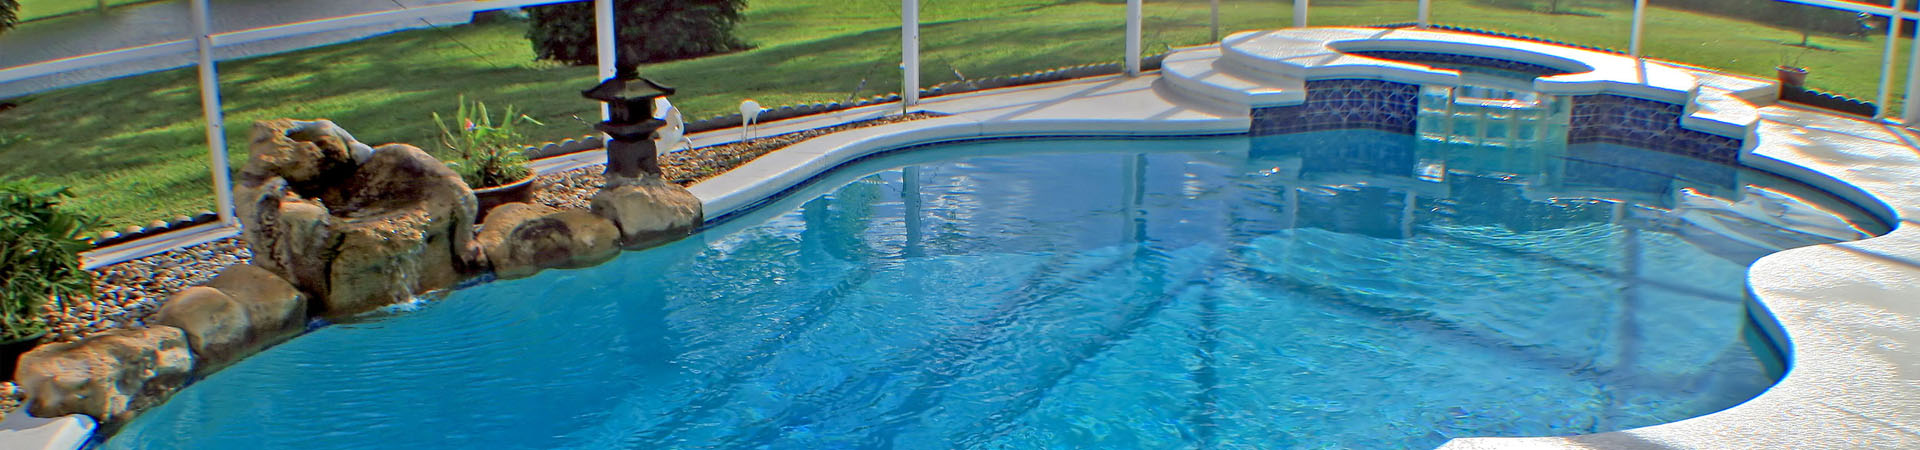 Residential Pool with hot tub | Stahlman Pool Company - Naples, Florida